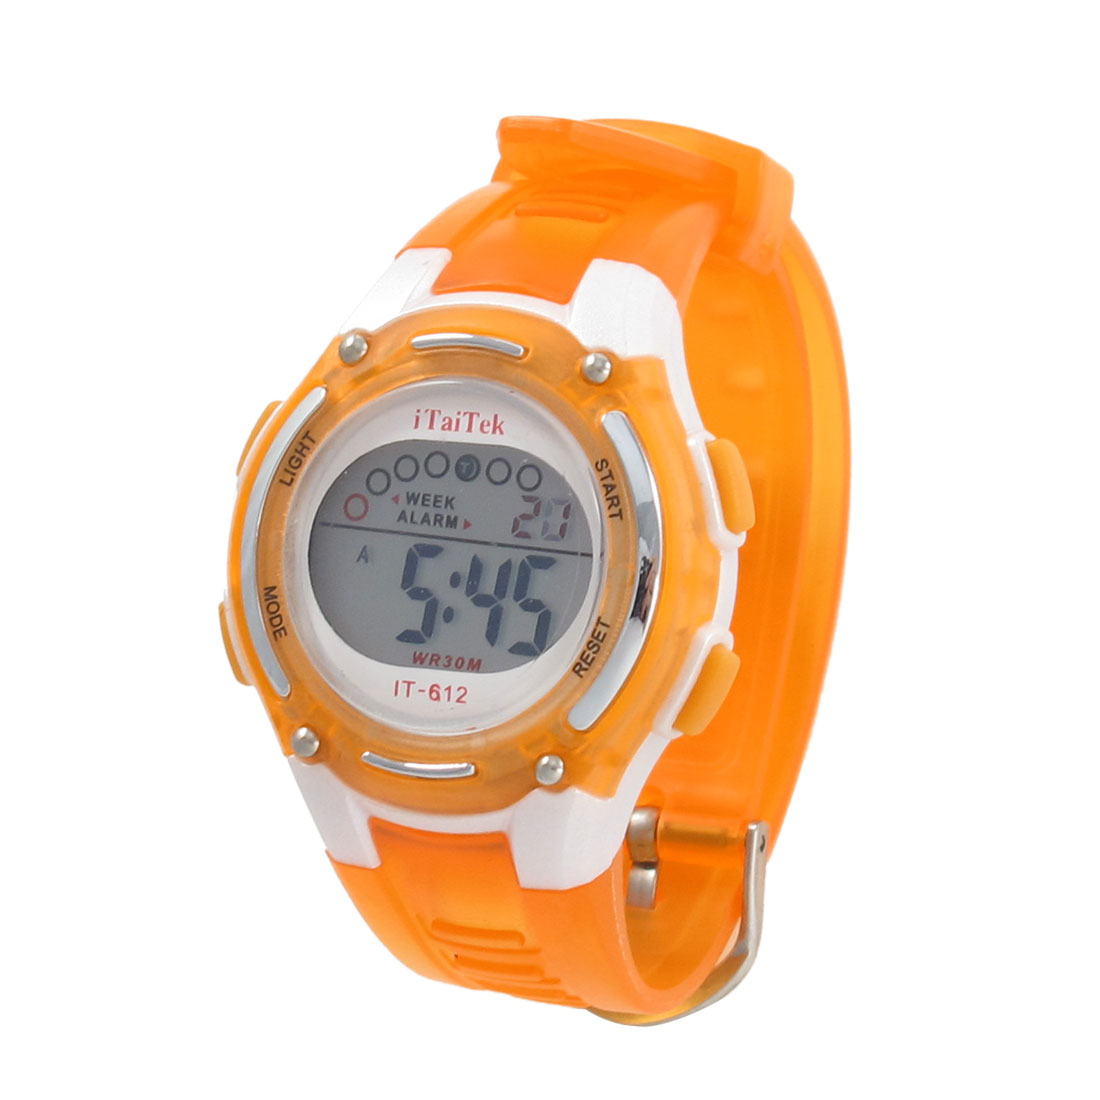 Ladies Adjustable Band Orange Coldlight Stopwatch Alarm Clock Sport Watch w Box